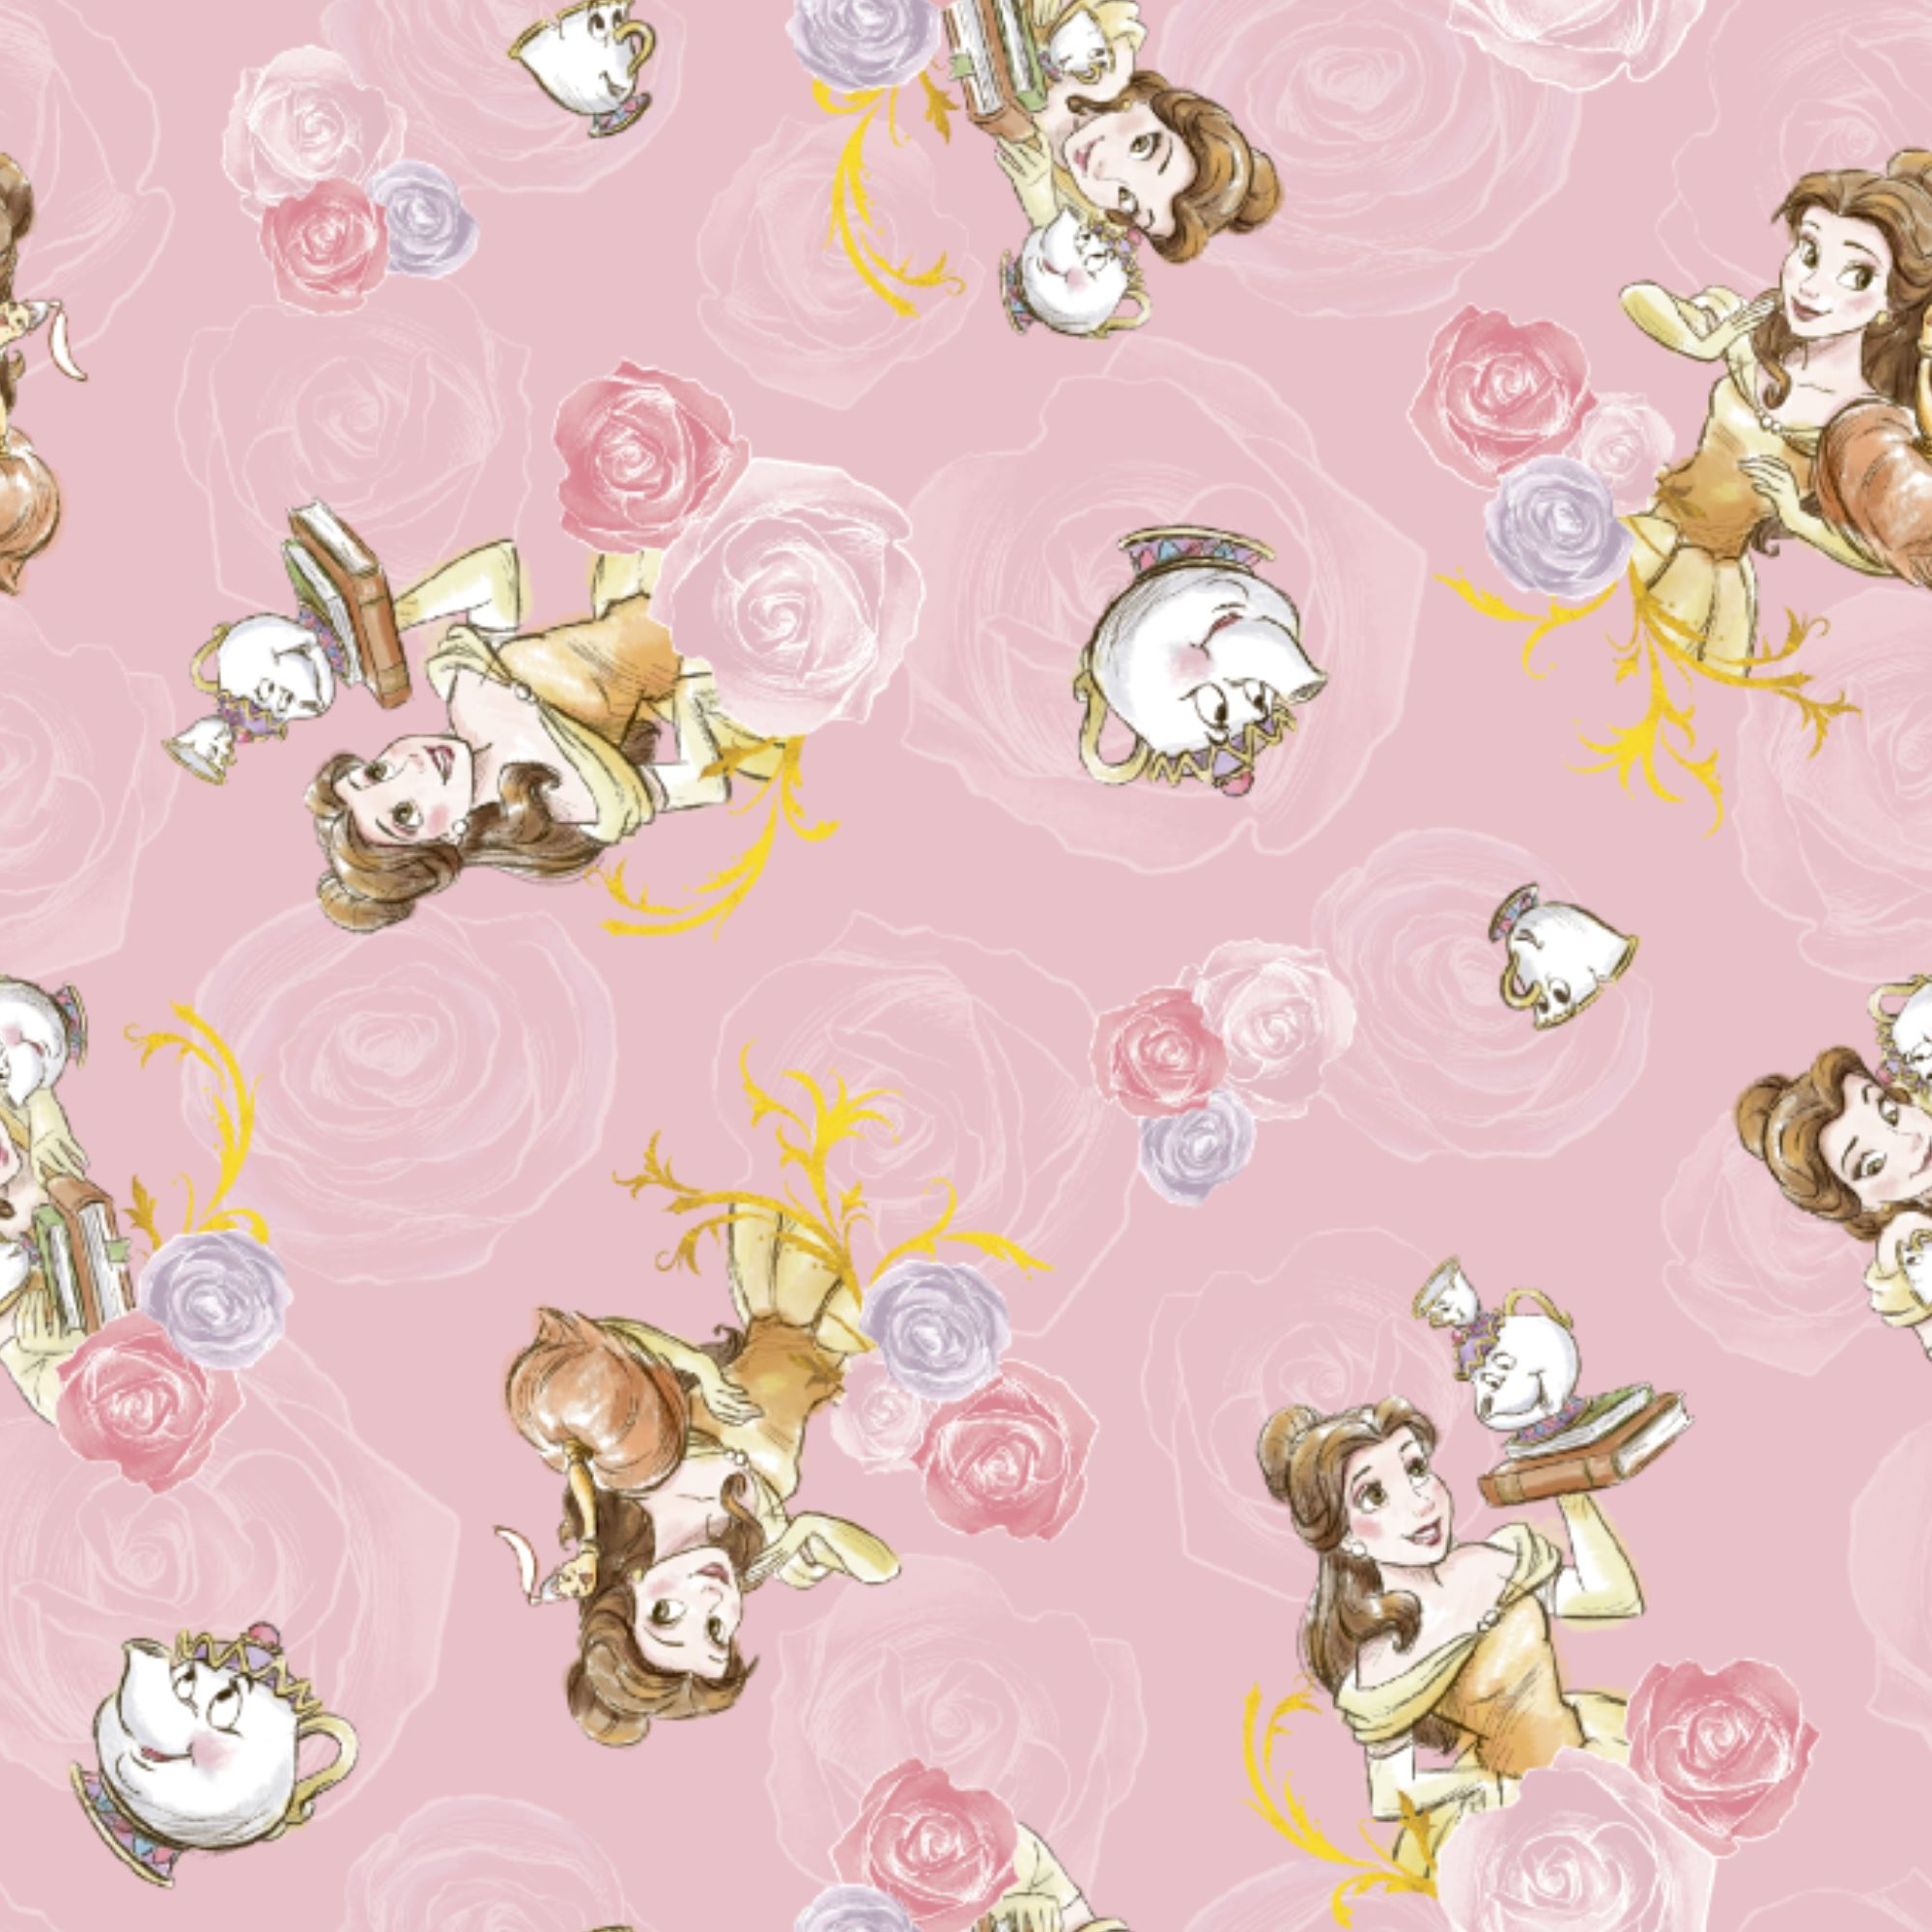 Beauty and the Beast Personalised Gift Wrap Princess Belle Wrapping Paper